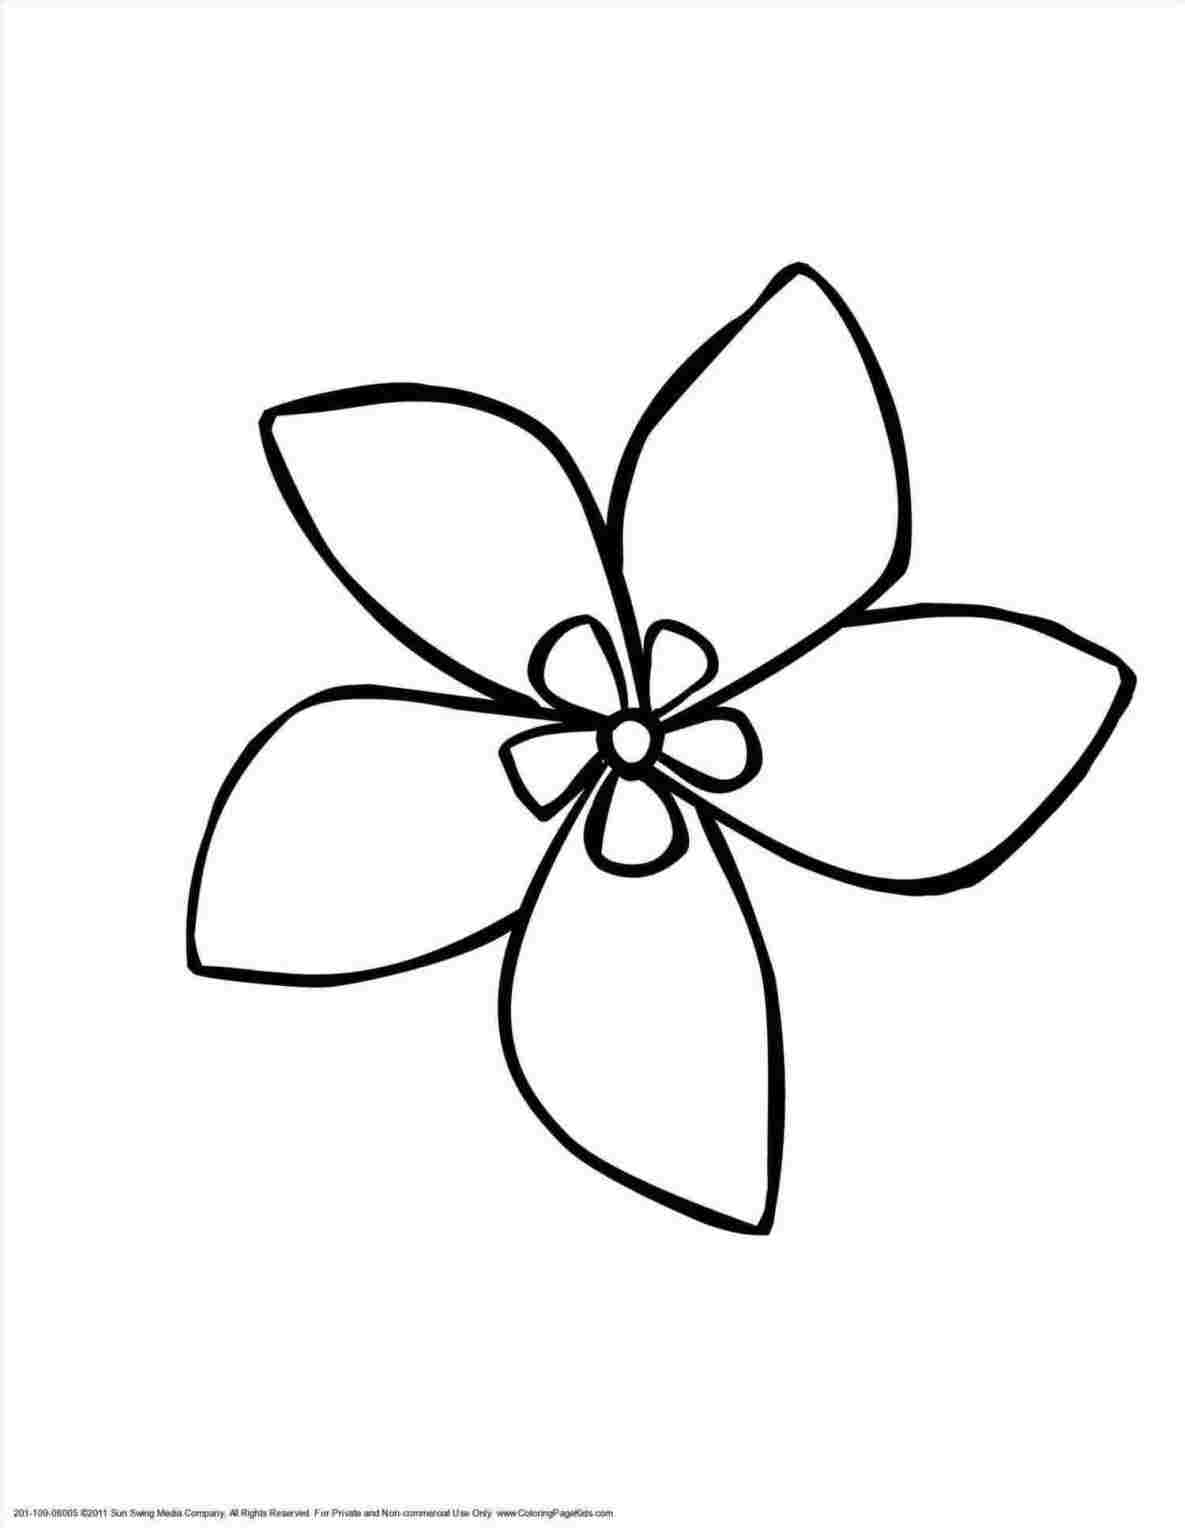 1185x1535 Awesome How To Draw A Flower Easy And Cute Youtube Ideas